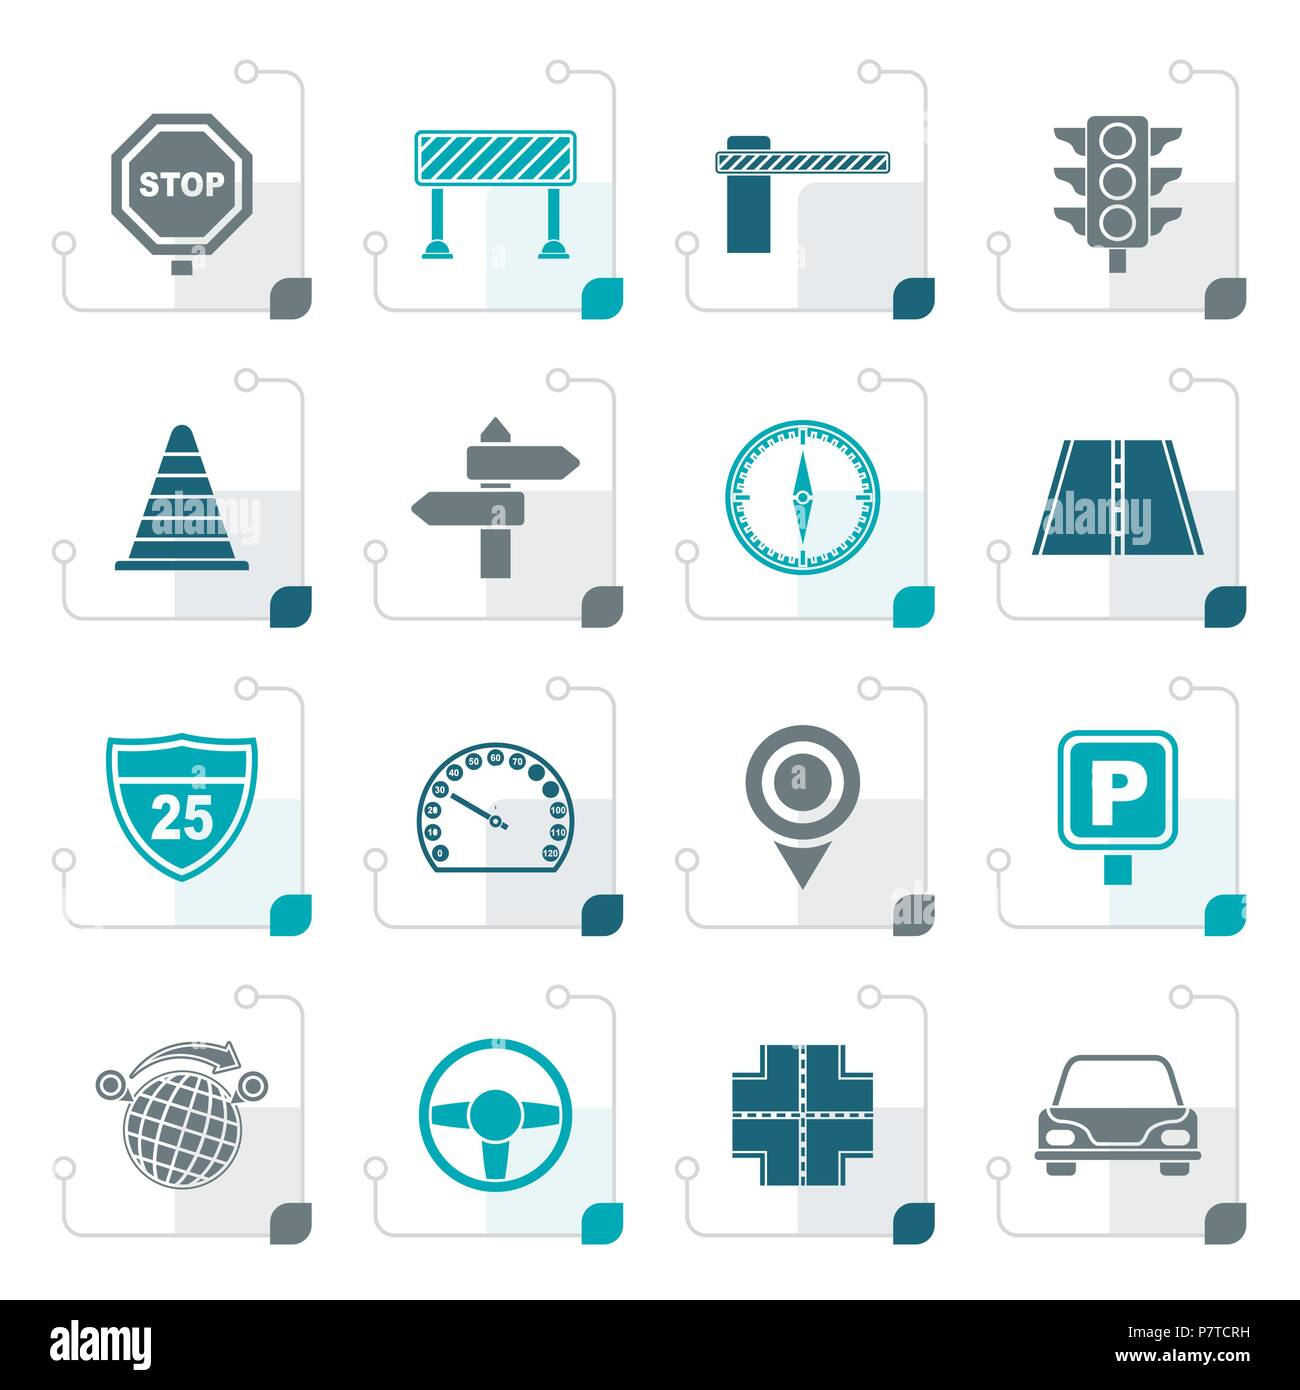 Stylized Road and Traffic Icons - vector icon set - Stock Vector